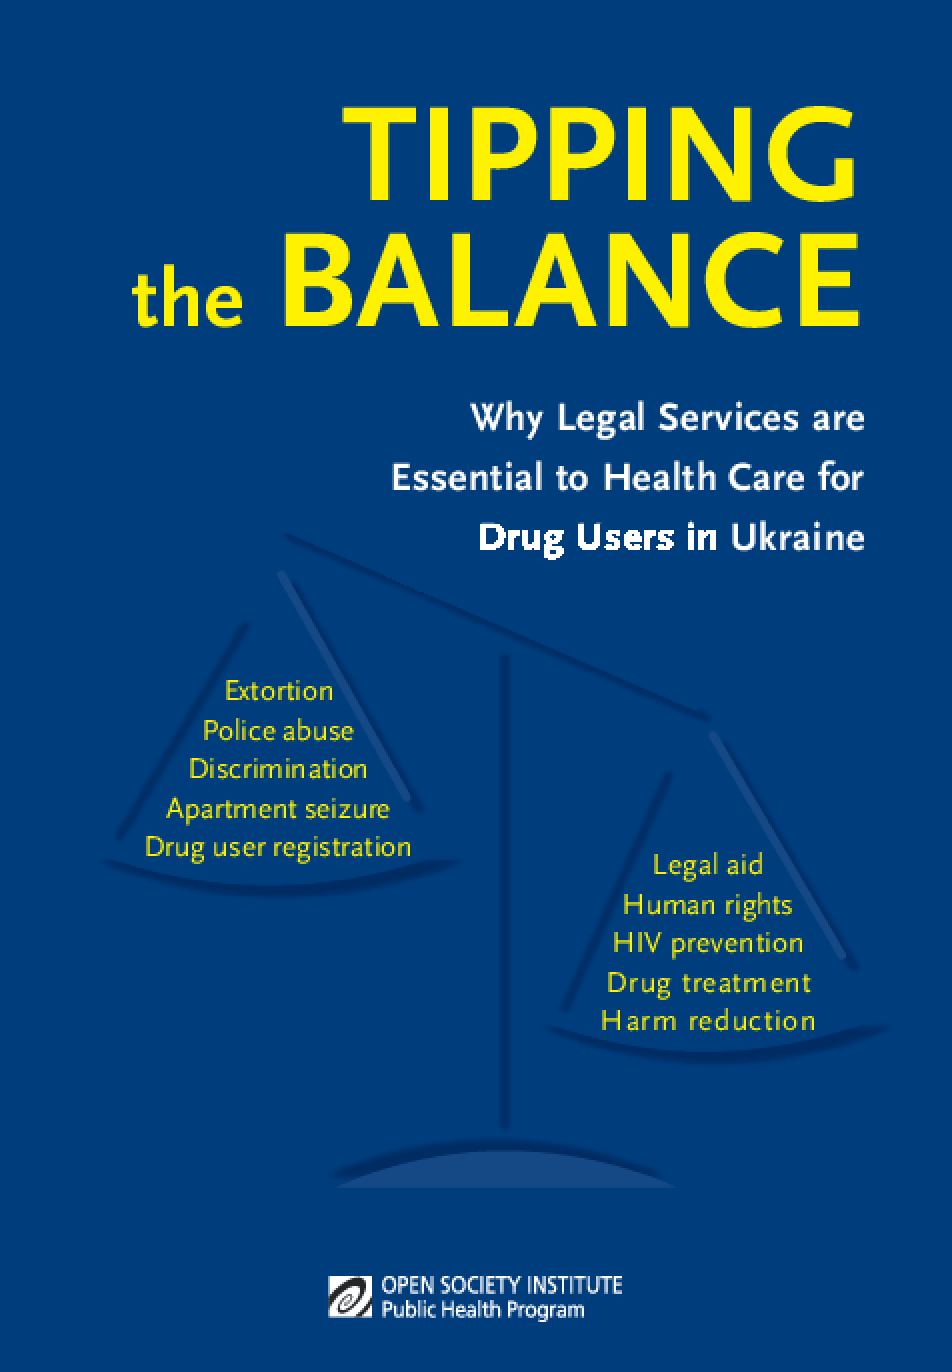 Tipping the Balance: Why Legal Services Are Essential to Health Care for Drug Users in Ukraine